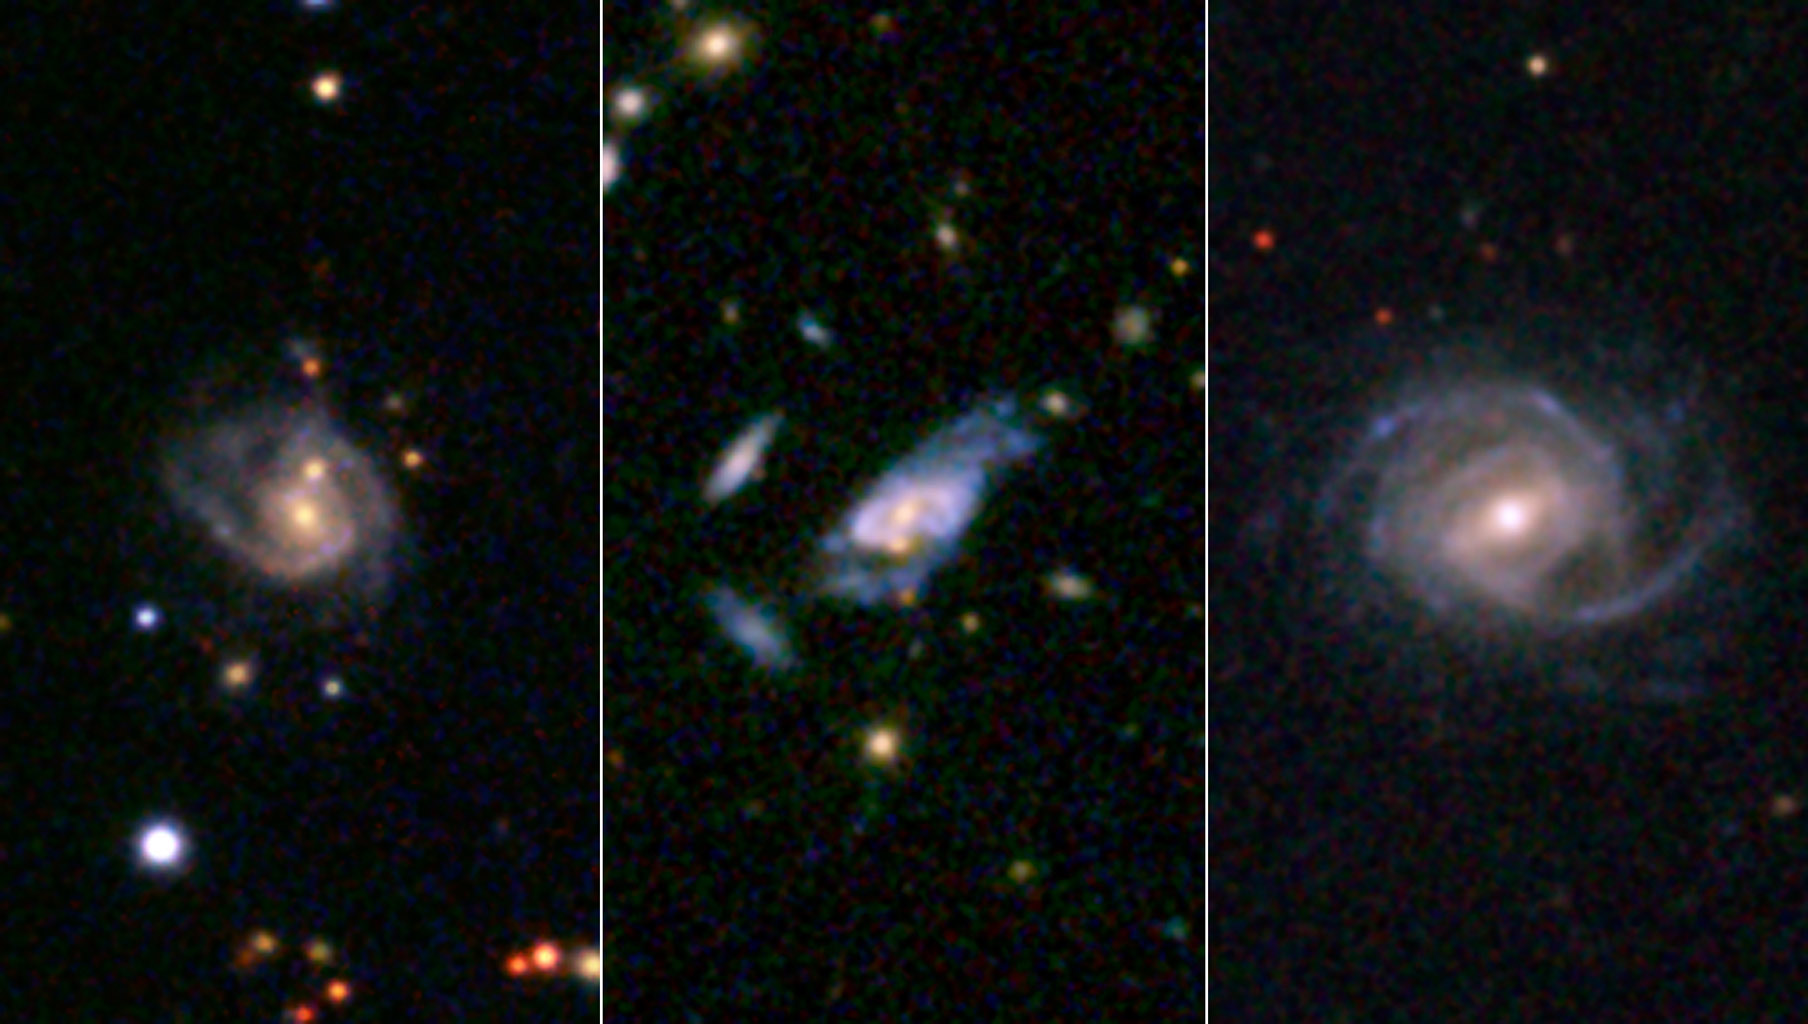 In archived NASA data, researchers have discovered 'super spiral' galaxies that dwarf our own spiral galaxy, the Milky Way, and compete in size and brightness with the largest galaxies in the universe.